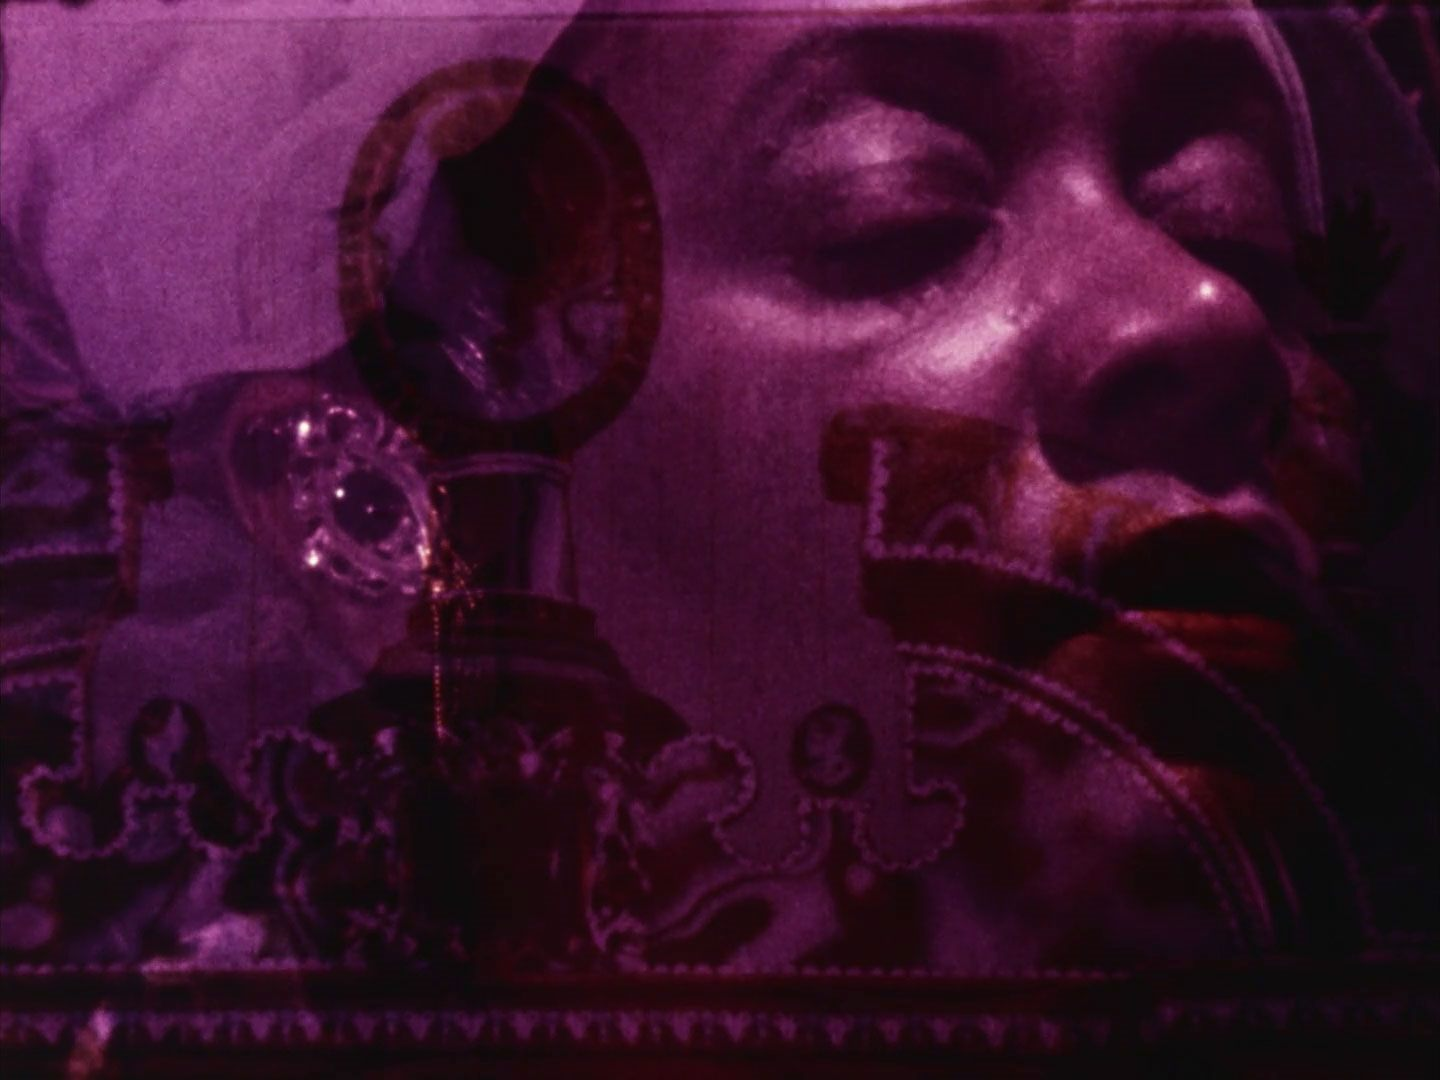 Artistic film still depicting a woman's face overlayed with the sillouettes of decorative antiques.